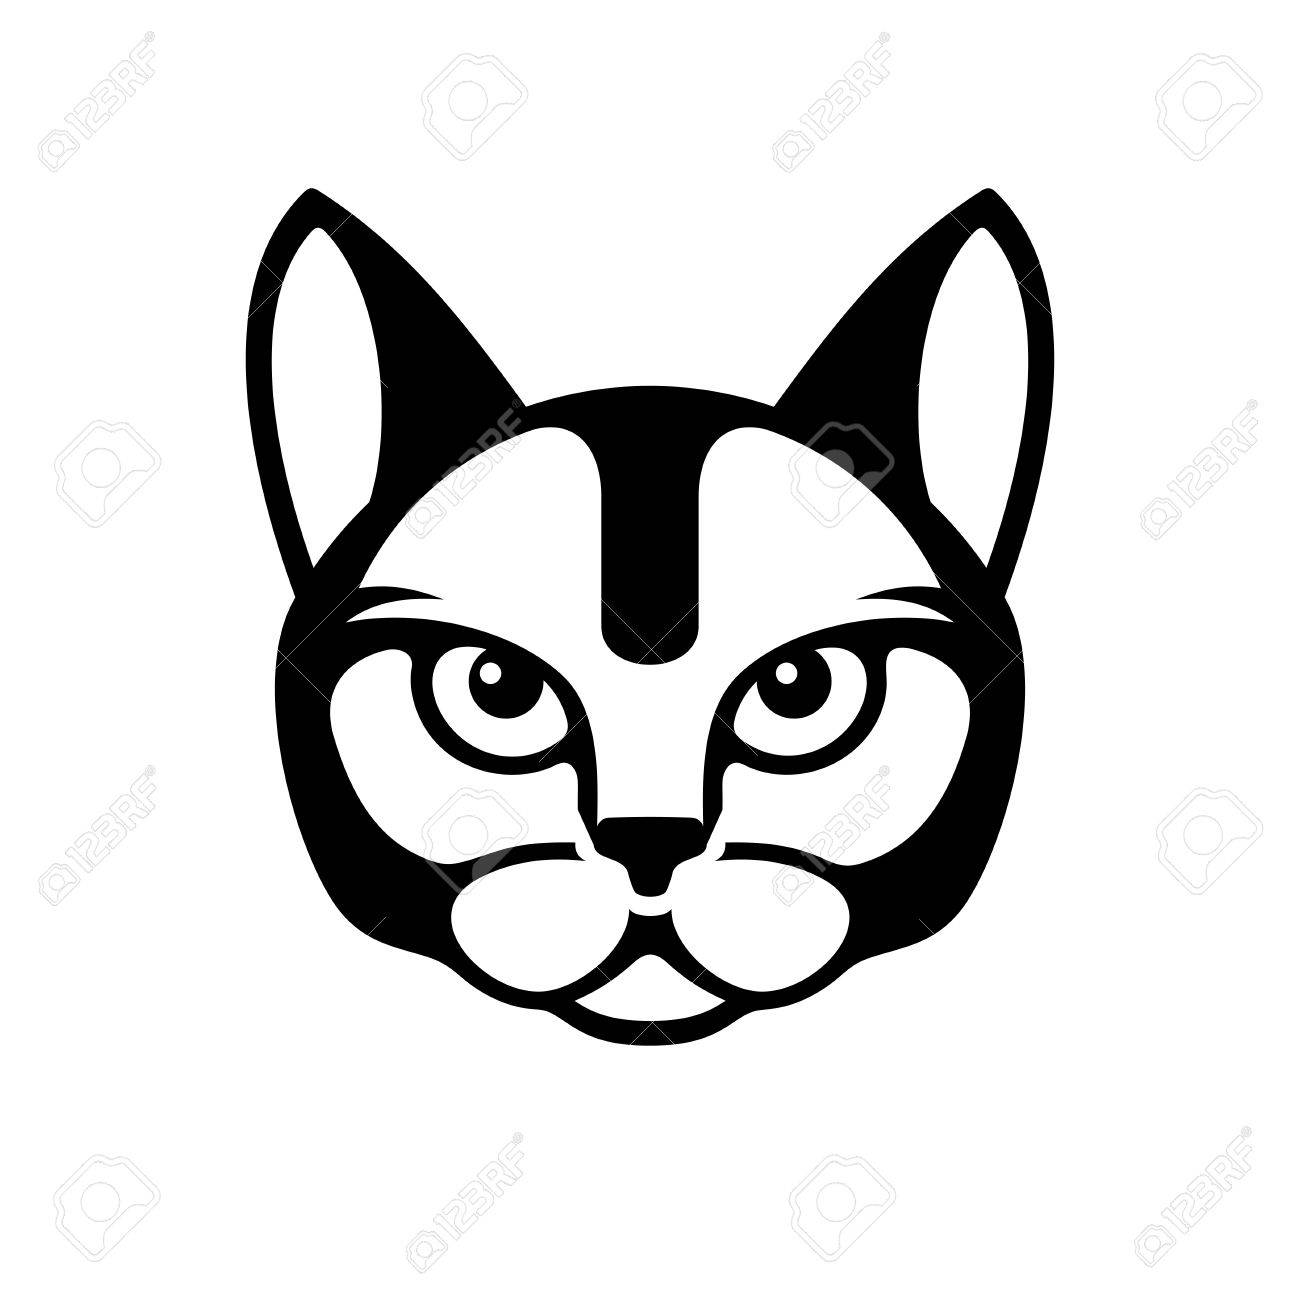 black cat face icon on white background illustration royalty free rh 123rf com cute cat face clipart cat face clipart black and white free